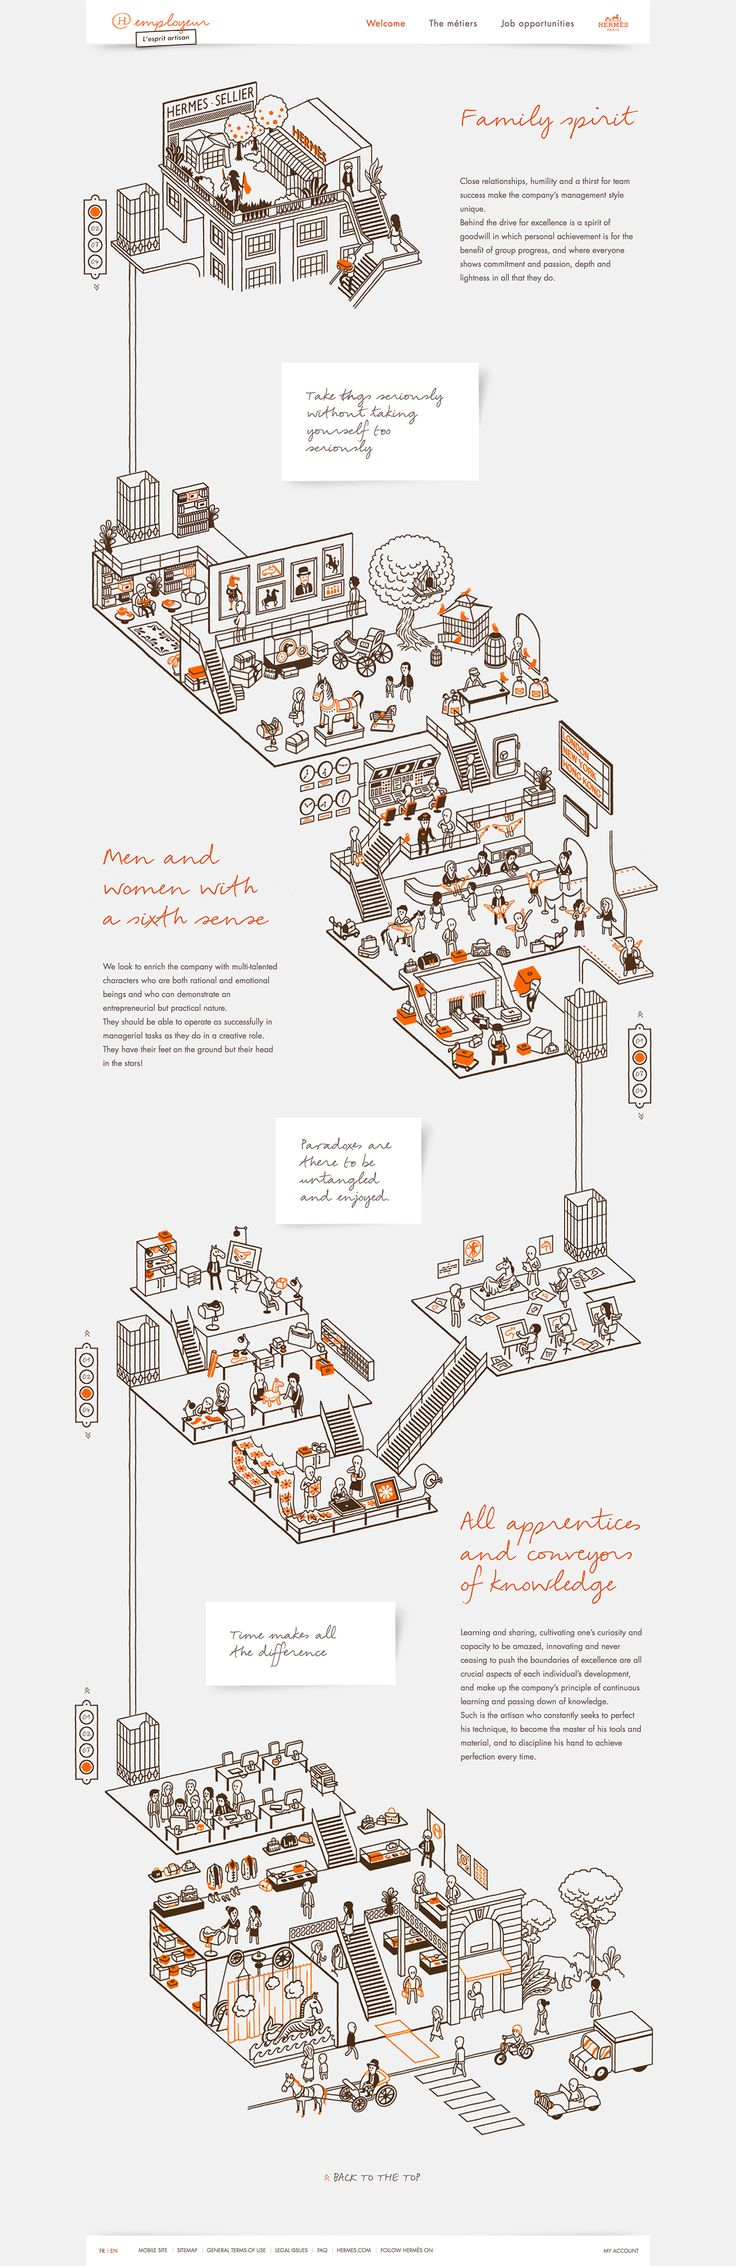 Unique Web Design, Hermes Employeur #WebDesign #Design